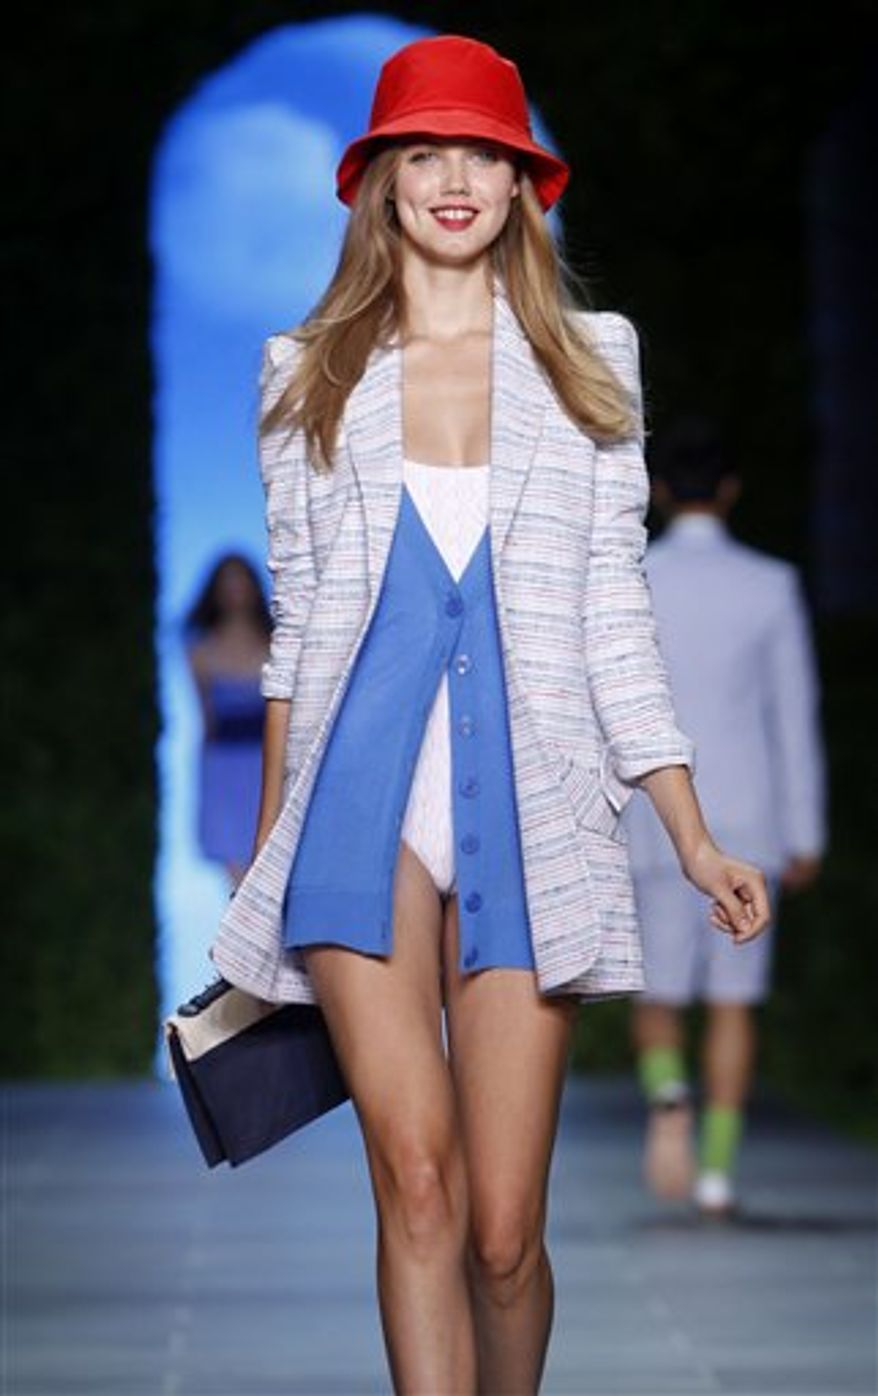 The Tommy Hilfiger spring 2011 collection is modeled during Fashion Week in New York, Sunday, Sept. 12, 2010.  (AP Photo/Seth Wenig)